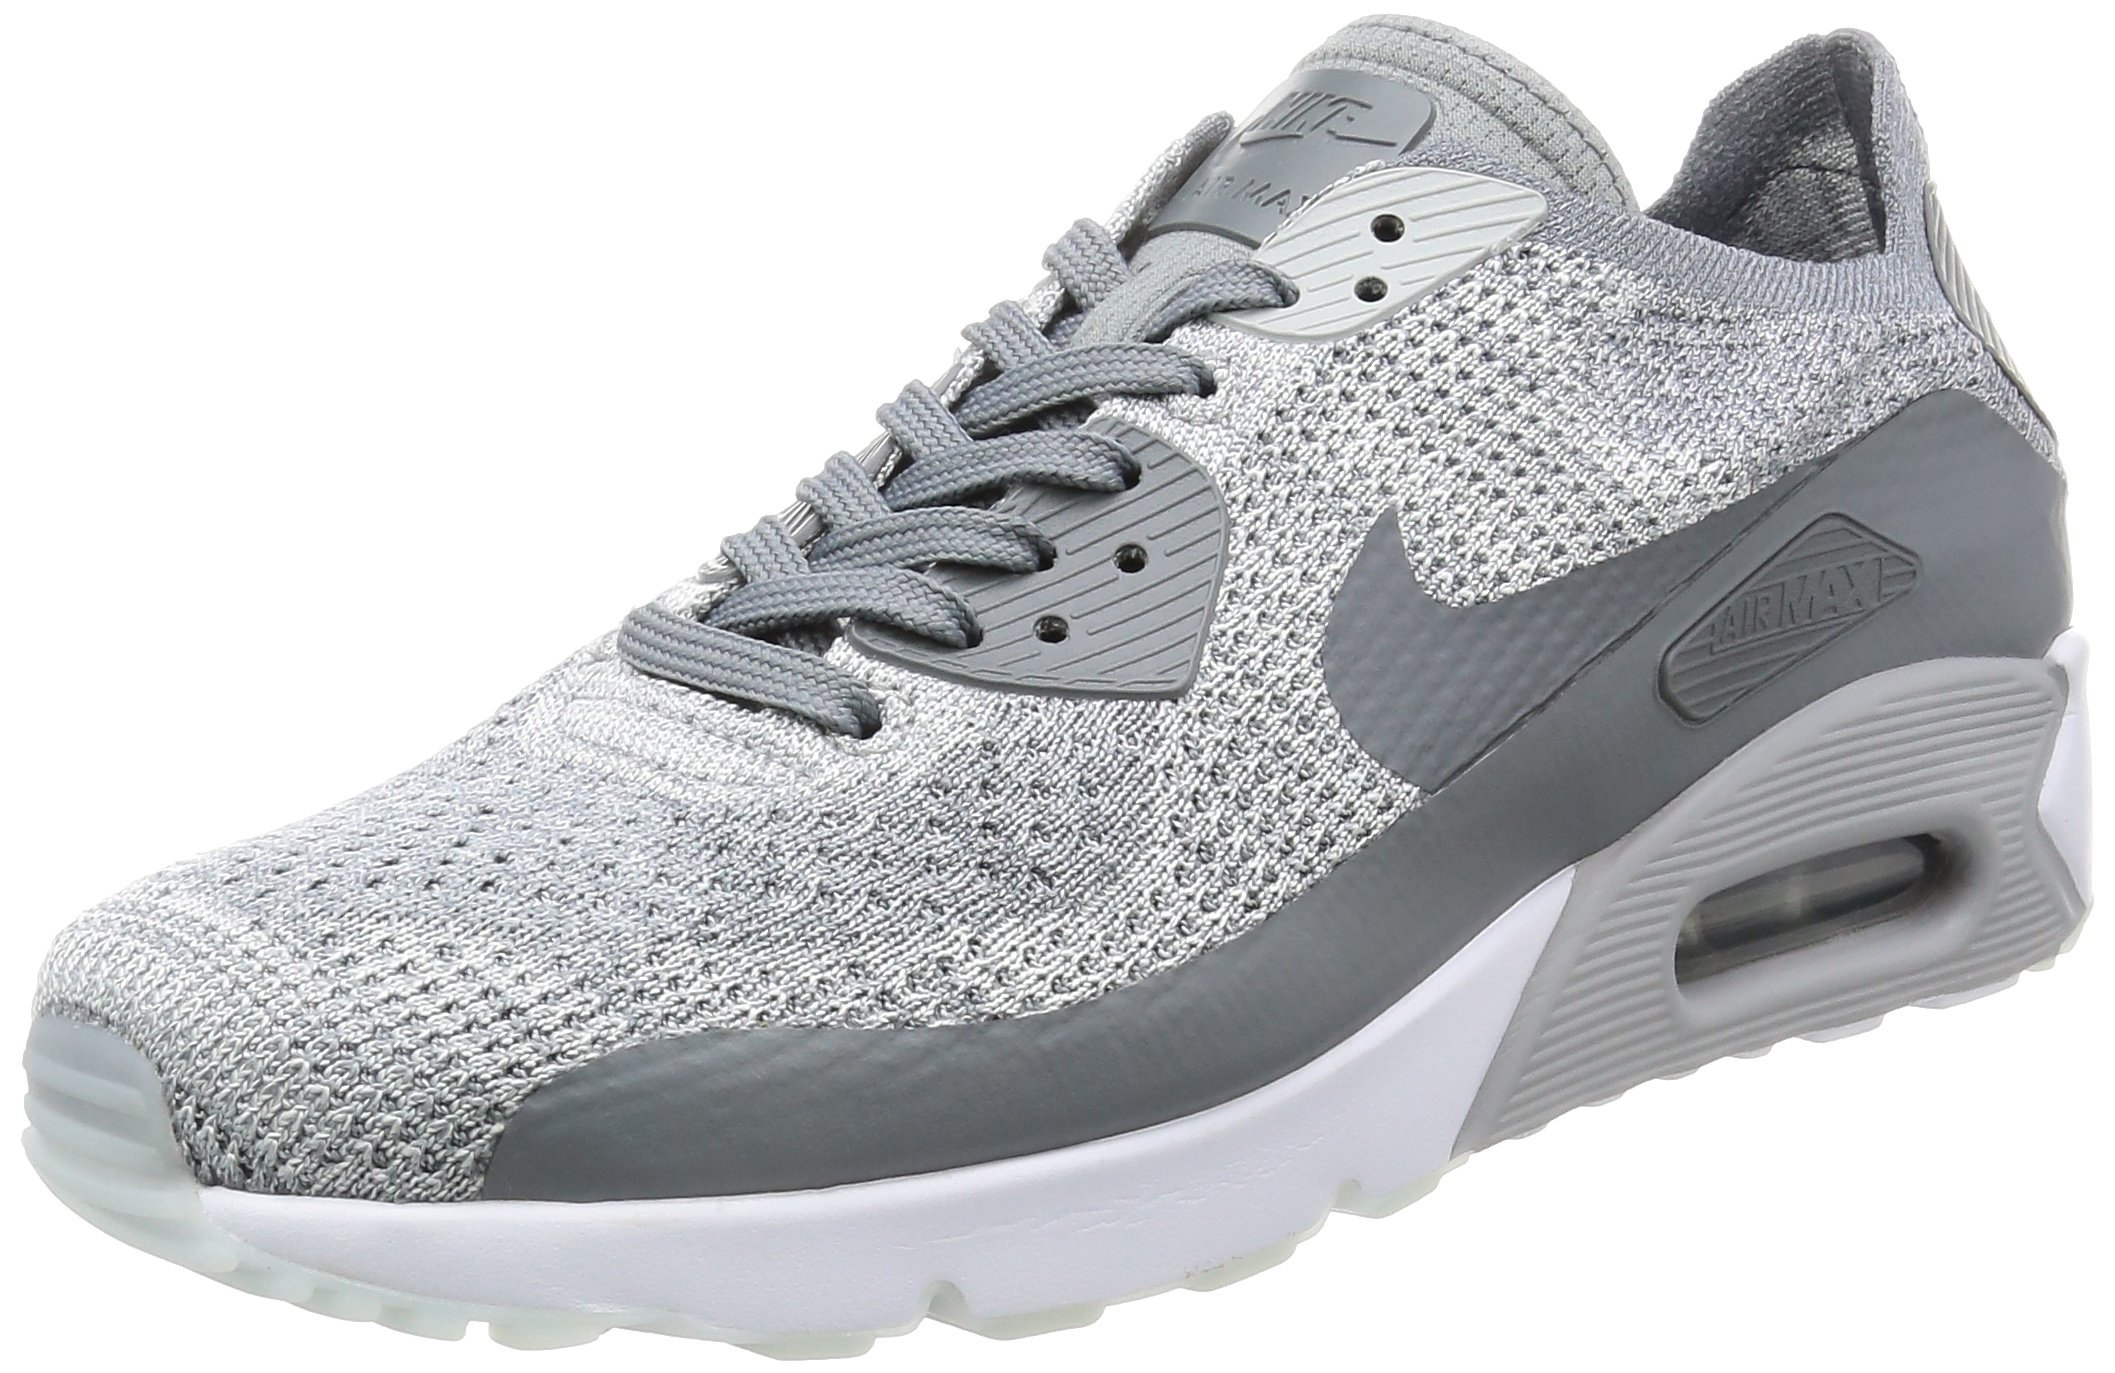 47f5058c3ac2 Galleon - Nike AIR MAX 90 Ultra 2.0 Flyknit Mens Running-Shoes  875943-003 9.5 - Pure Platinum Cool Grey-White-Wolf Grey